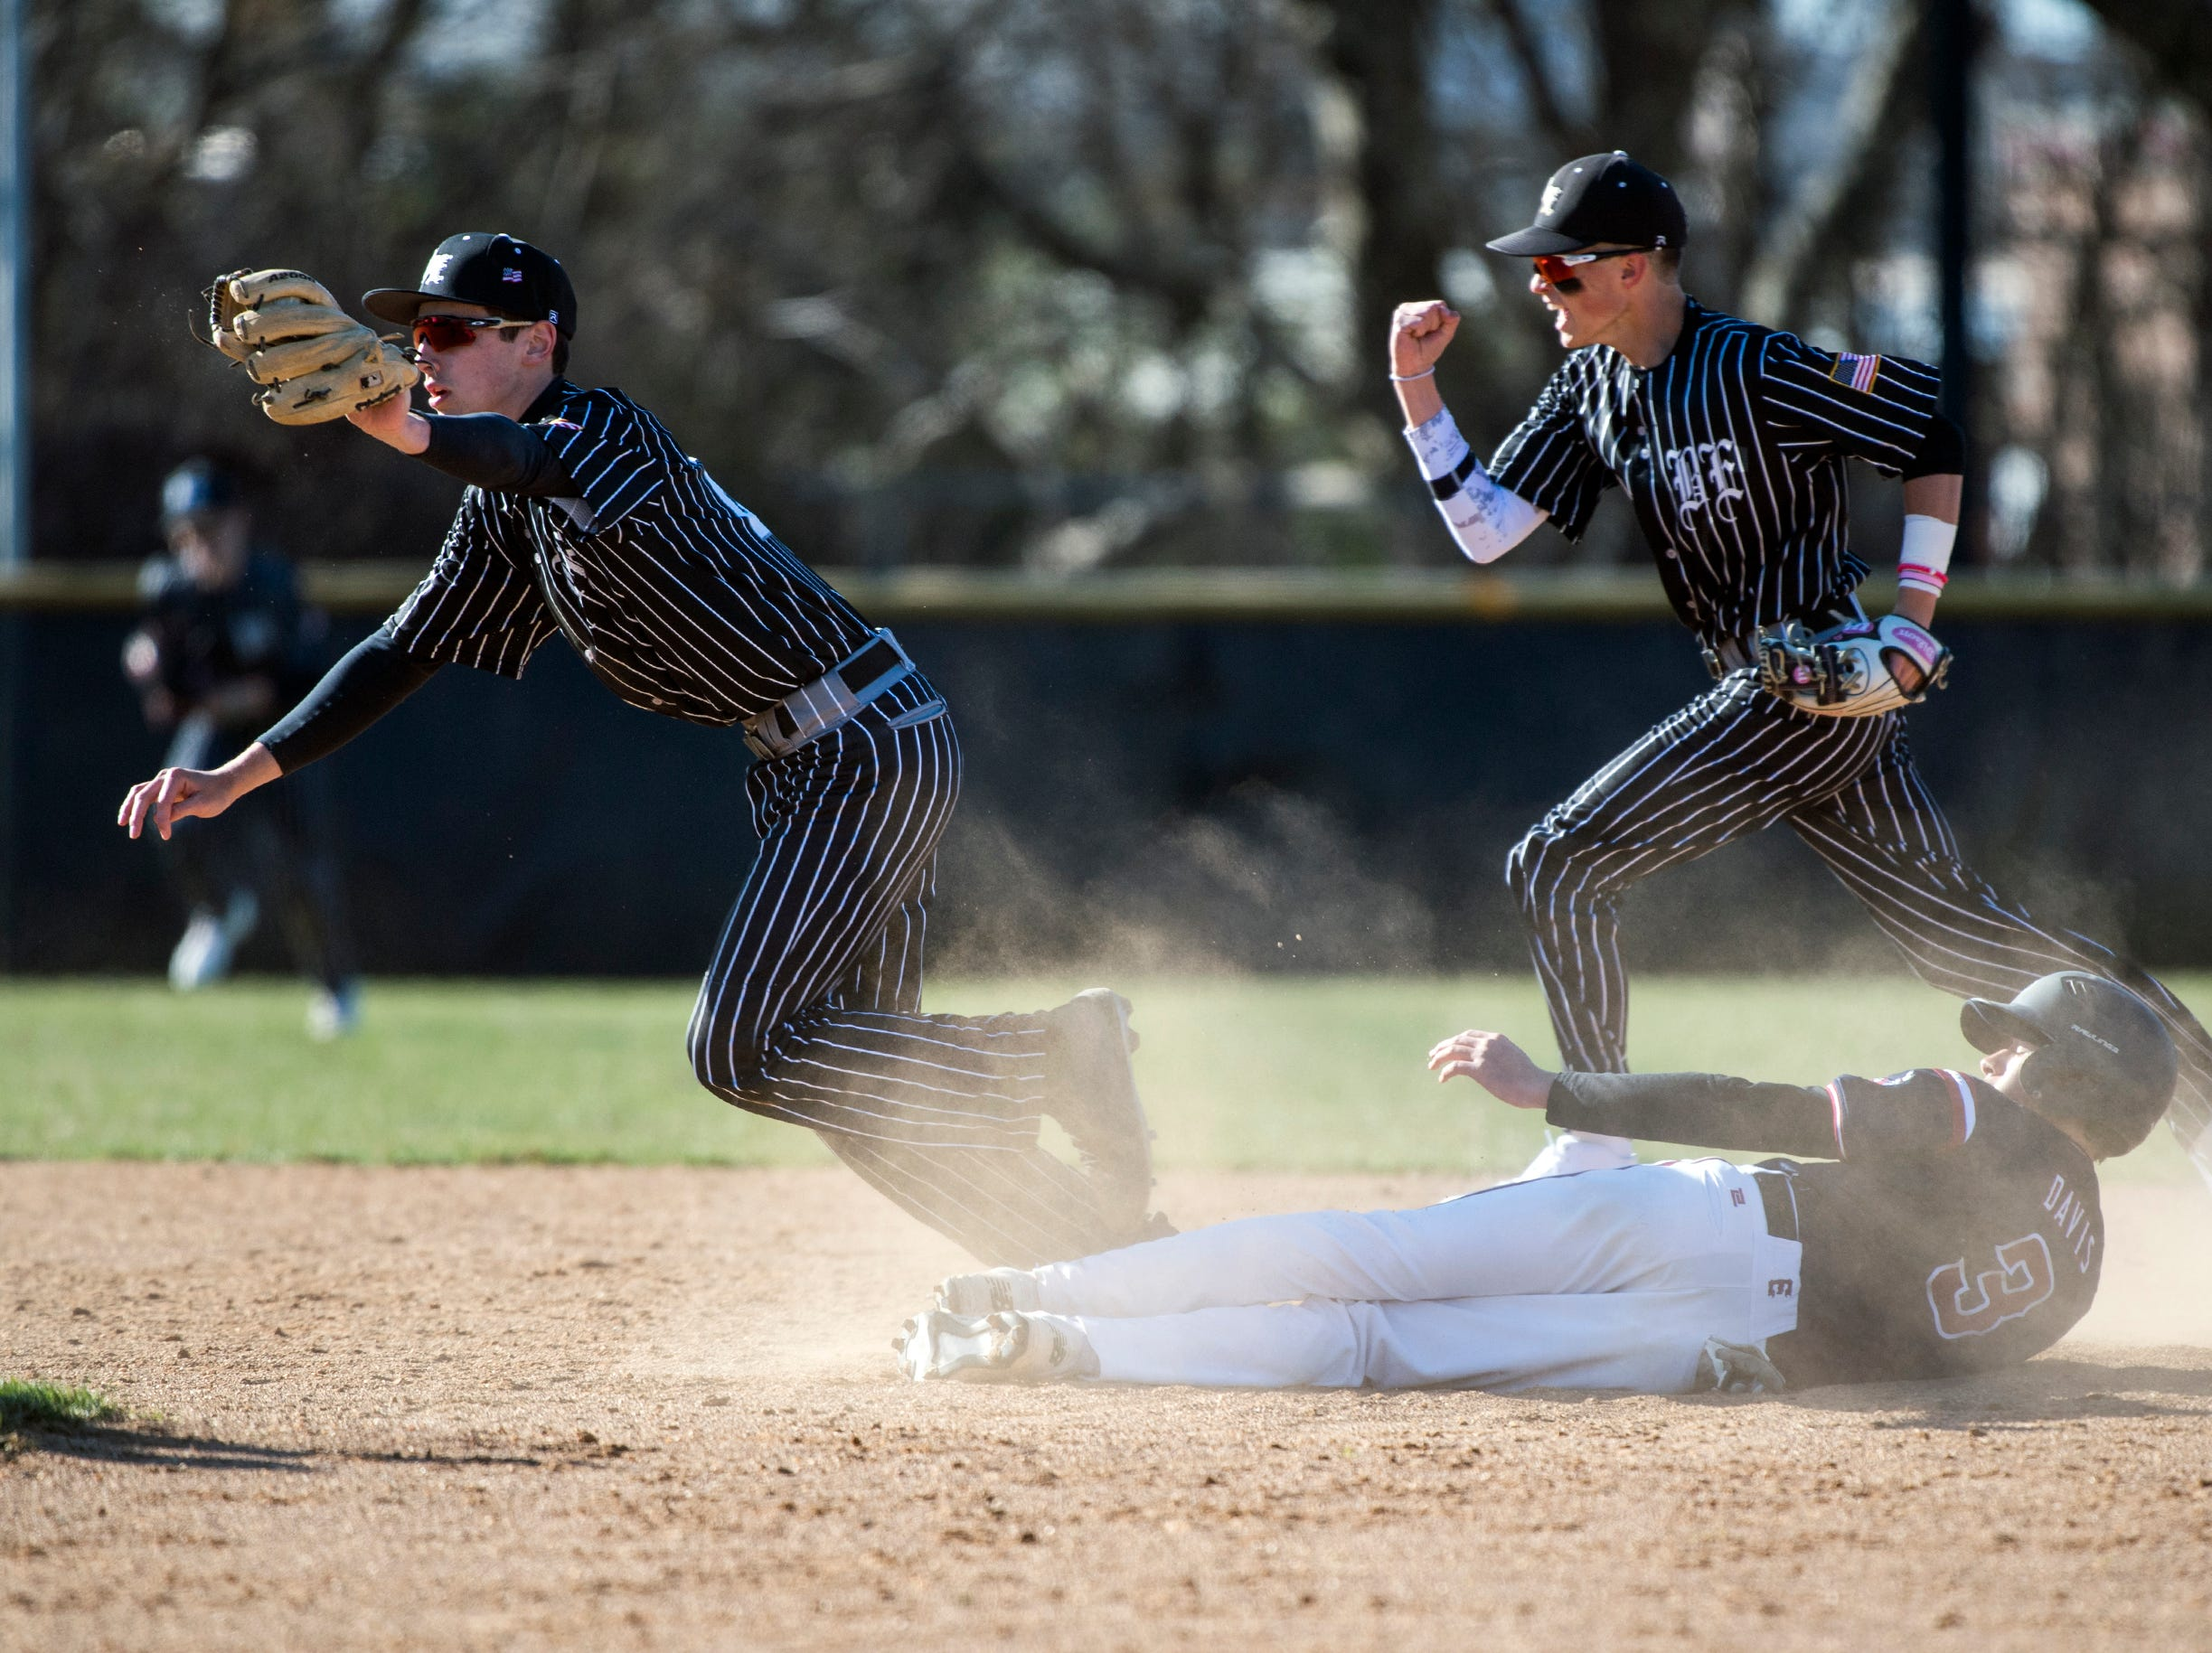 Bishop Eustace's Eric Sabato, left, tags out Eastern's Zach Davis (3) Monday, April 1, 2019 in Pennsauken. Eustace won 12-0.